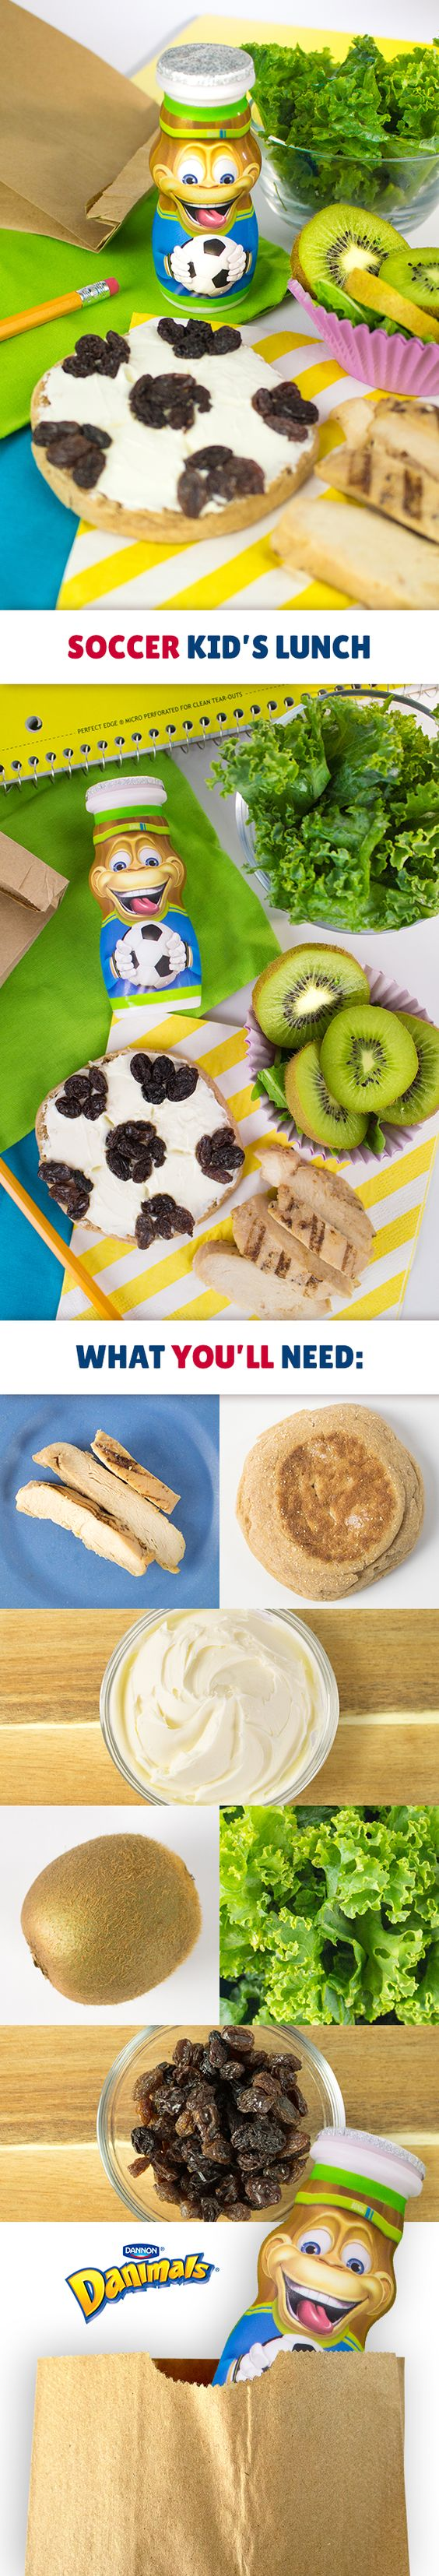 Here's a winning kid's lunch idea. Make a soccer ball by spreading low-fat cream cheese on a whole wheat English muffin, and add raisins to create the ball pattern. Pair it with grilled chicken slices, a mixed green salad and kiwi slices for a healthy, kid-friendly lunch. Kick up this soccer themed lunchbox idea by adding a Soccer Danimals® Smoothie.